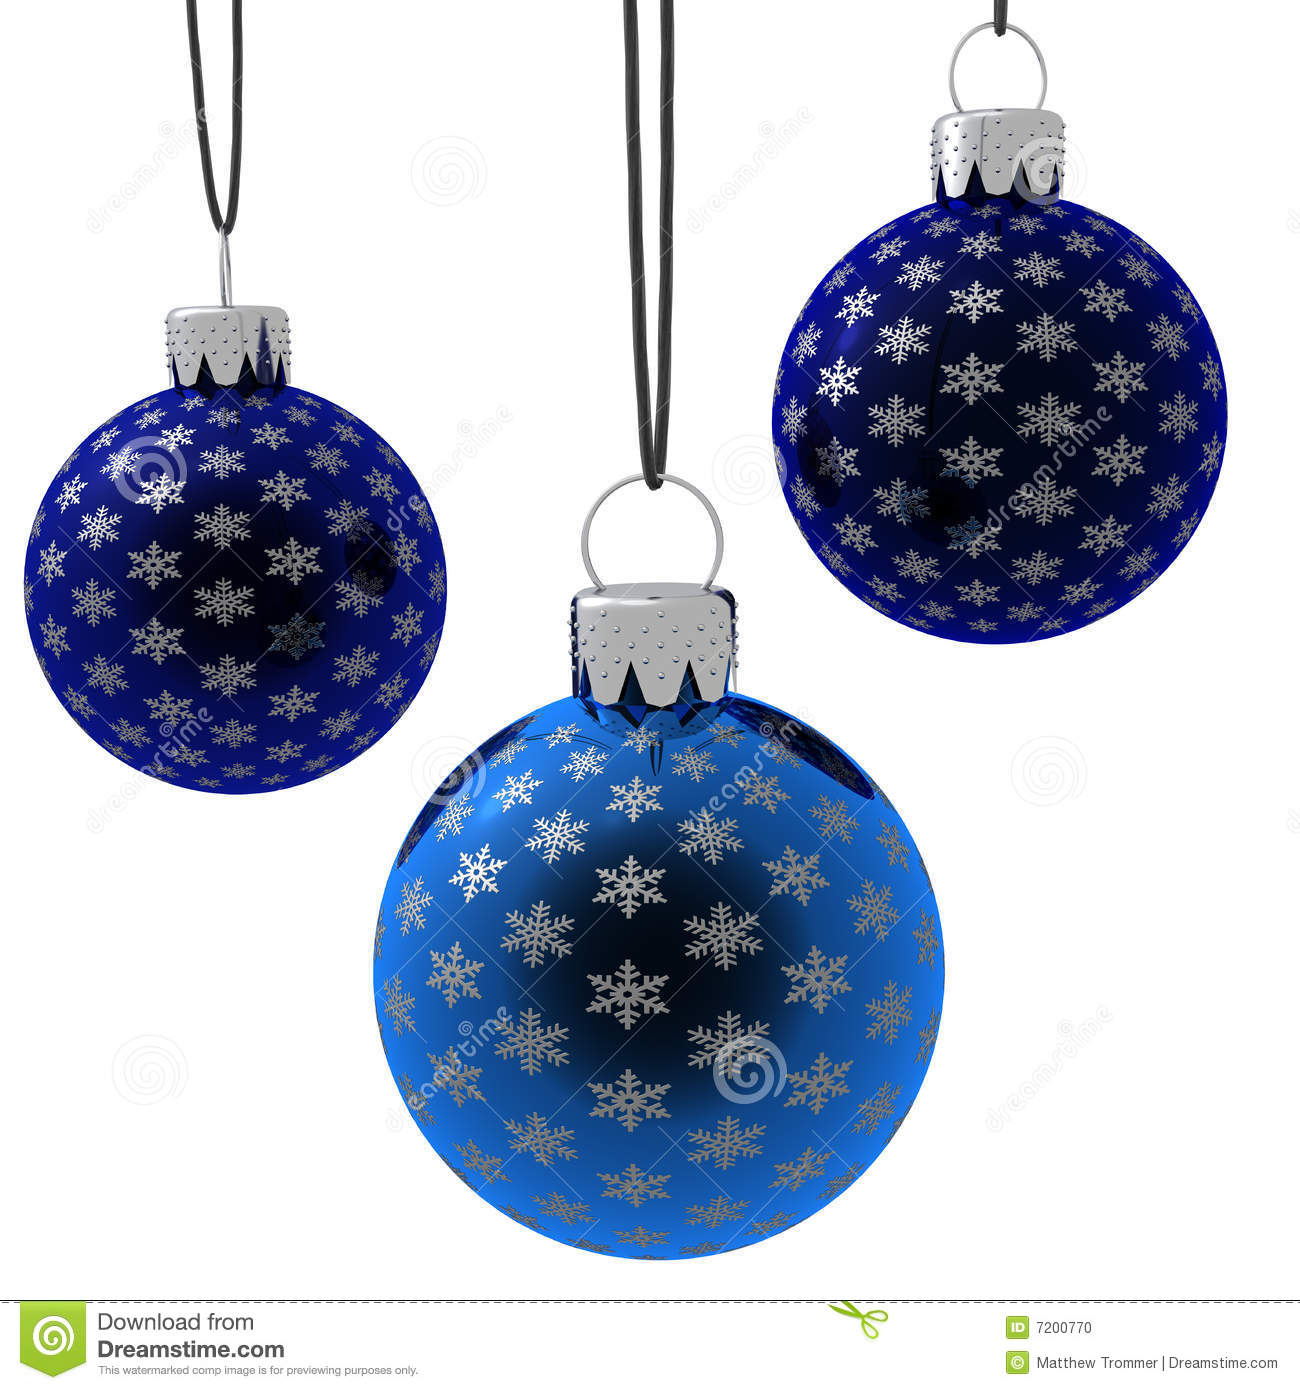 Isolated hanging blue christmas ornaments stock photo image 7200770 - Hanging christmas ornaments ...